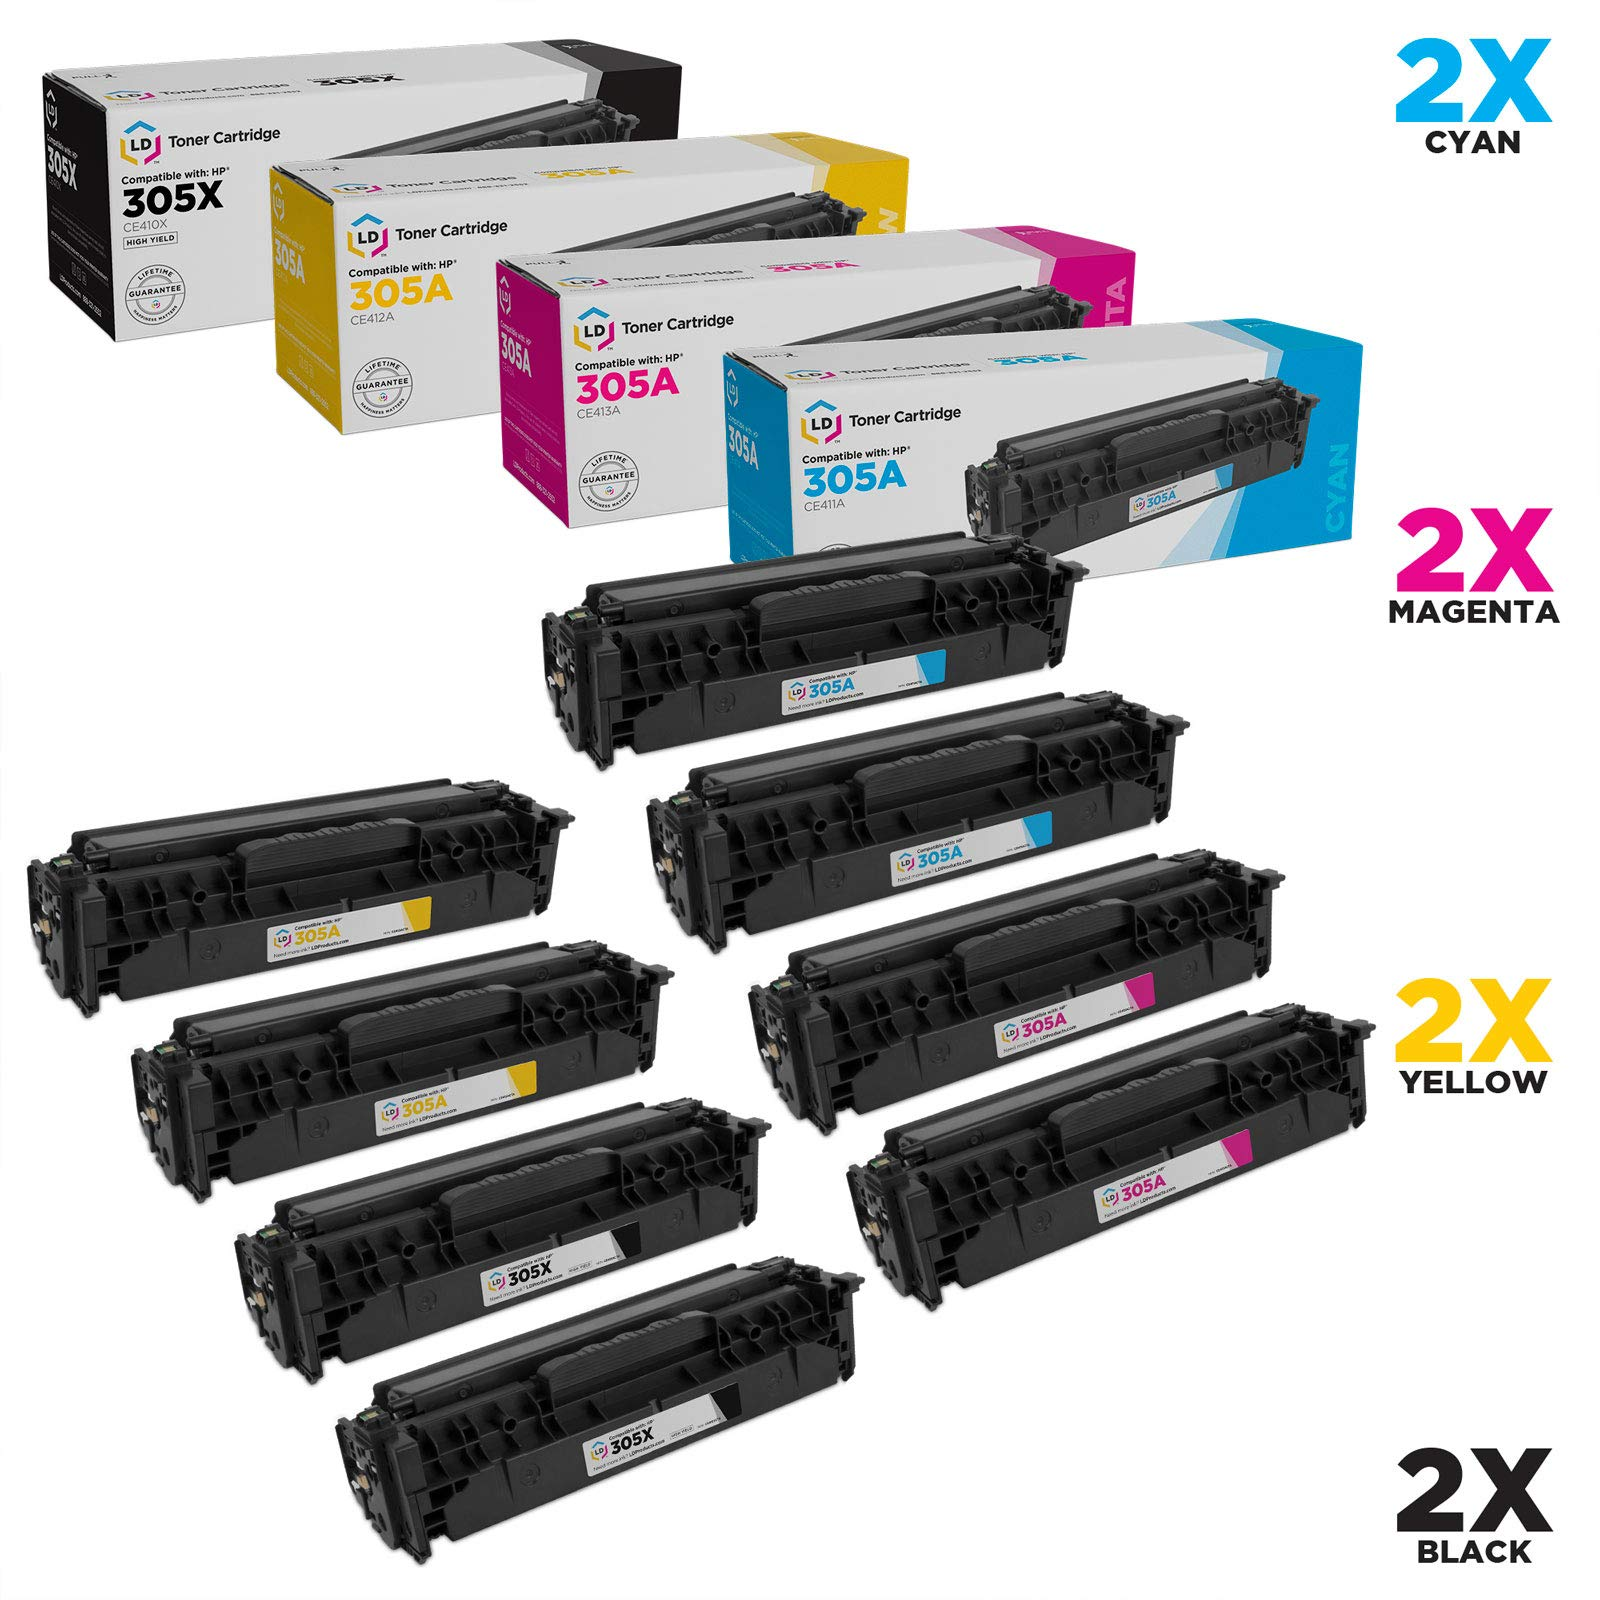 LD Remanufactured Toner Cartridge Replacements for HP 305A & 305X High Yield (2 Black, 2 Cyan, 2 Magenta, 2 Yellow, 8-Pack)